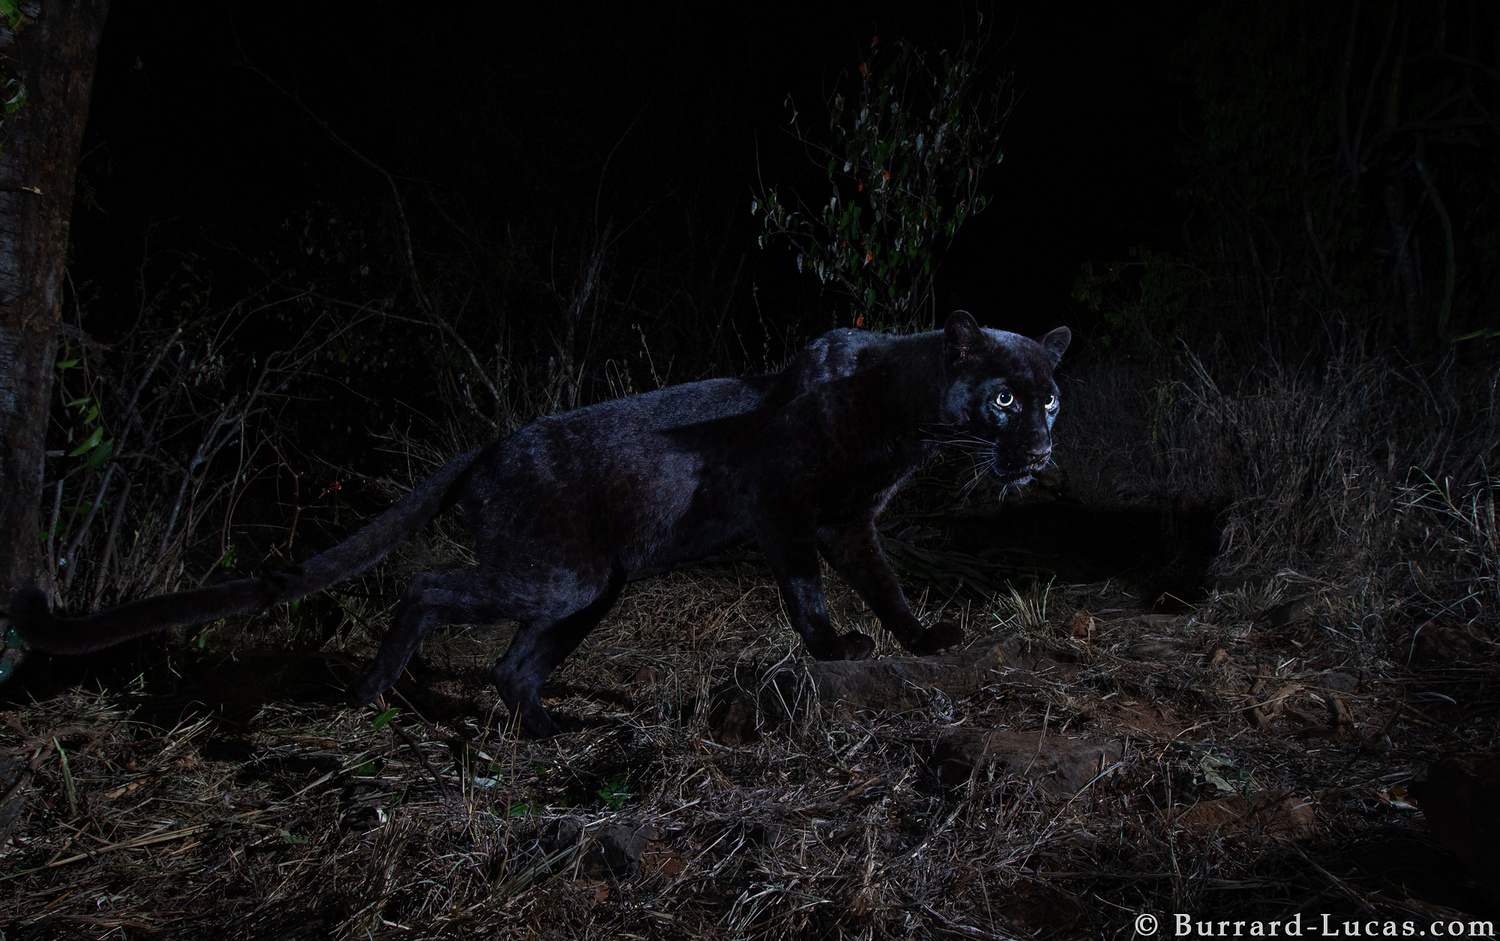 a black leopard slinking past the frame